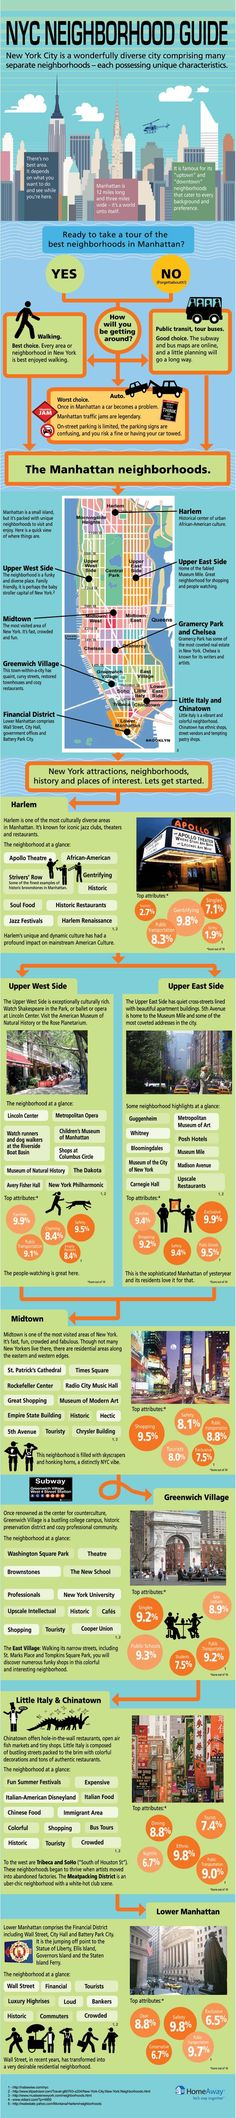 NYC Neighborhood Guide - Visit Like a Local